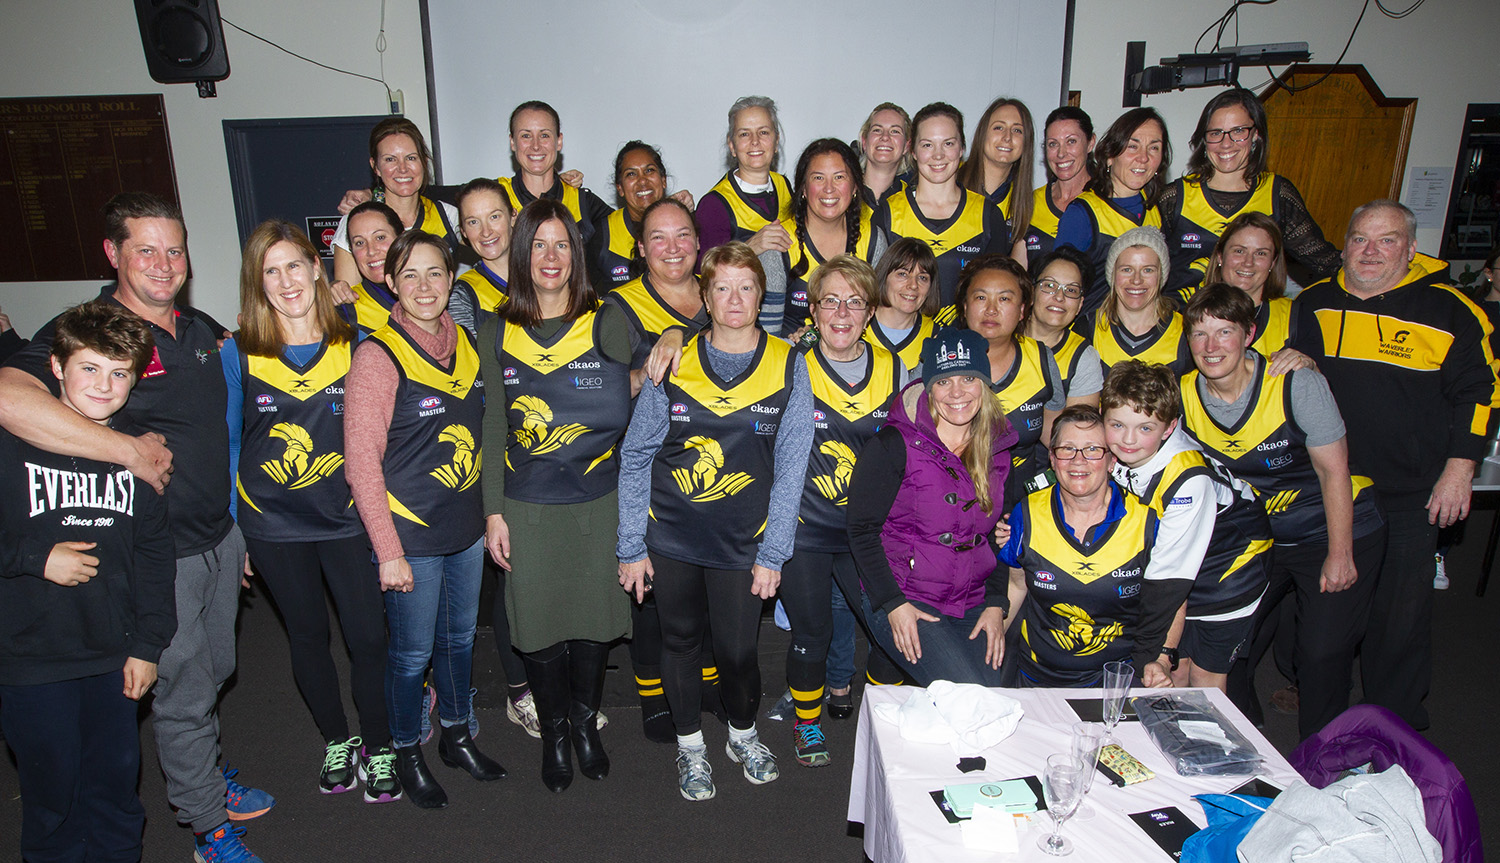 The team at the jumper presentation night. Whilst the line up varied through the season, the level of enthusiasm was constant.